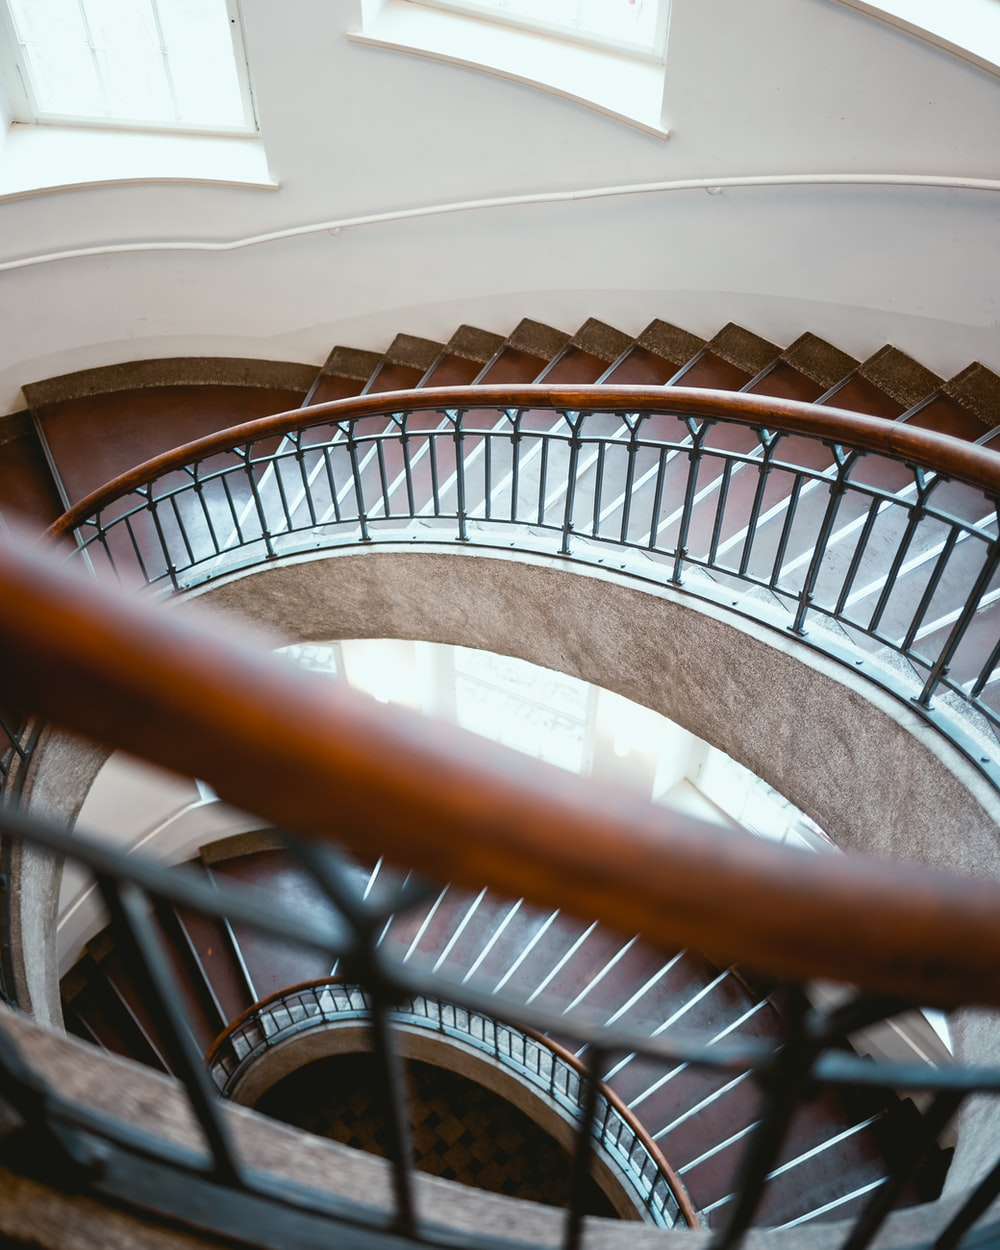 brown stair close-up photography